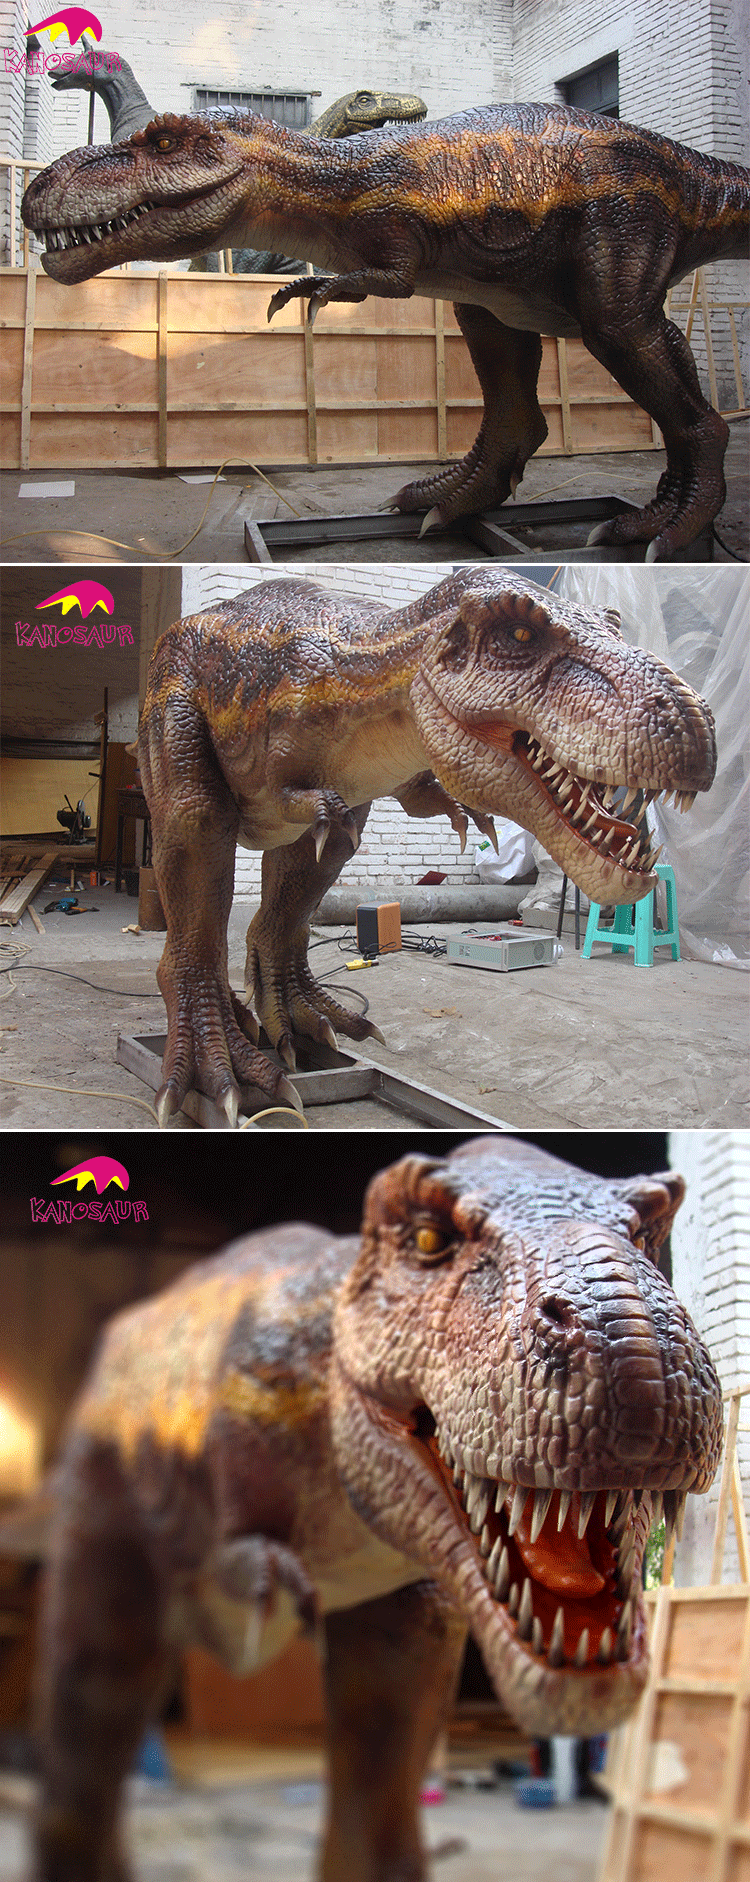 KANO0157 Waterproof Realistic Artificial Fiberglass Large Dinosaur Figure